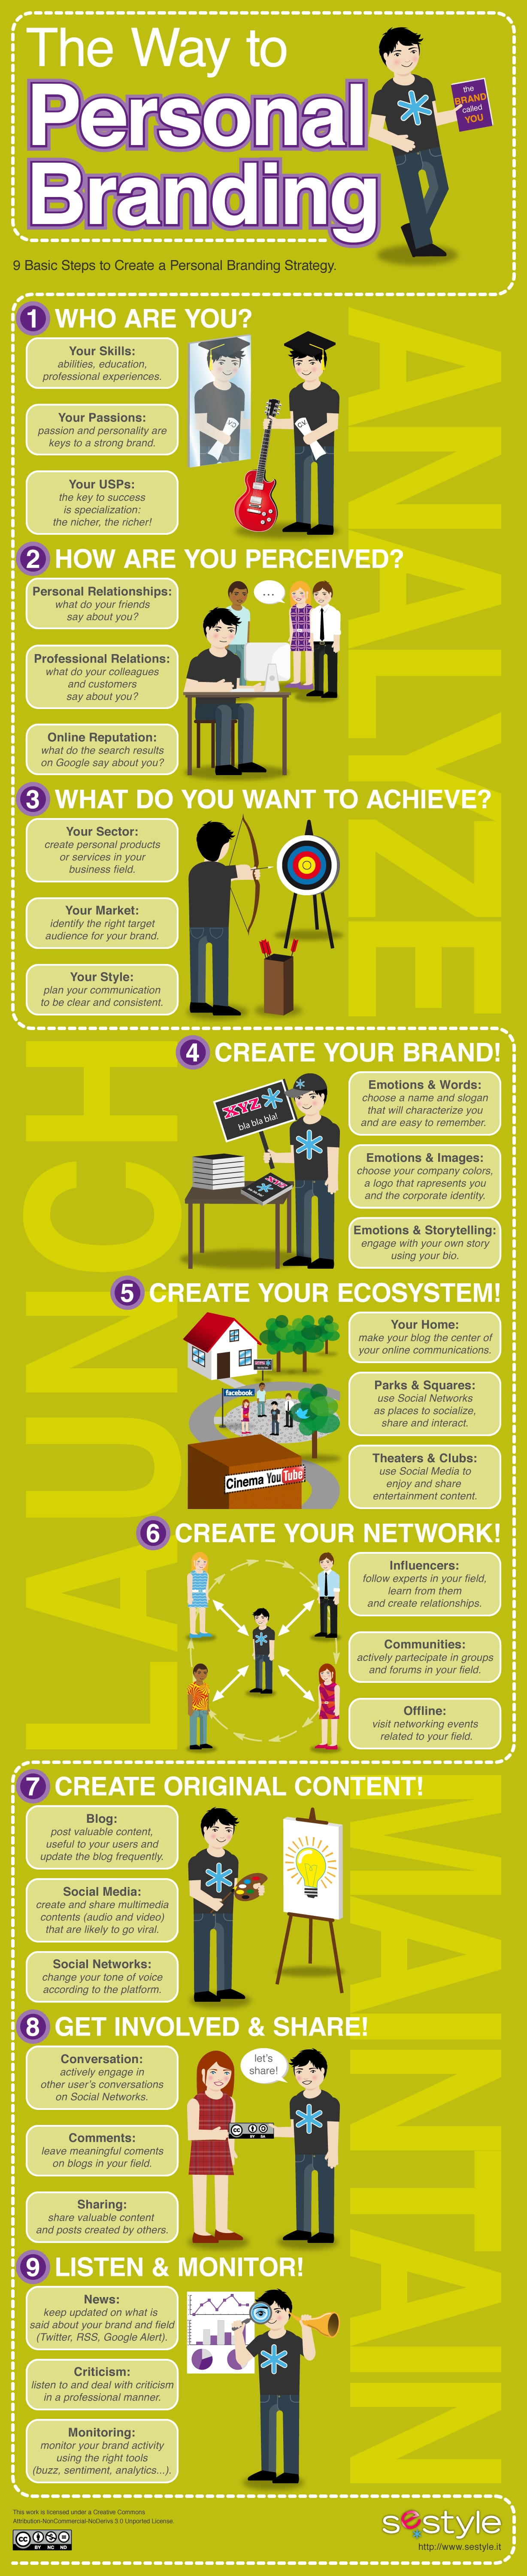 9 Steps To Better Personal Branding [Infographic]